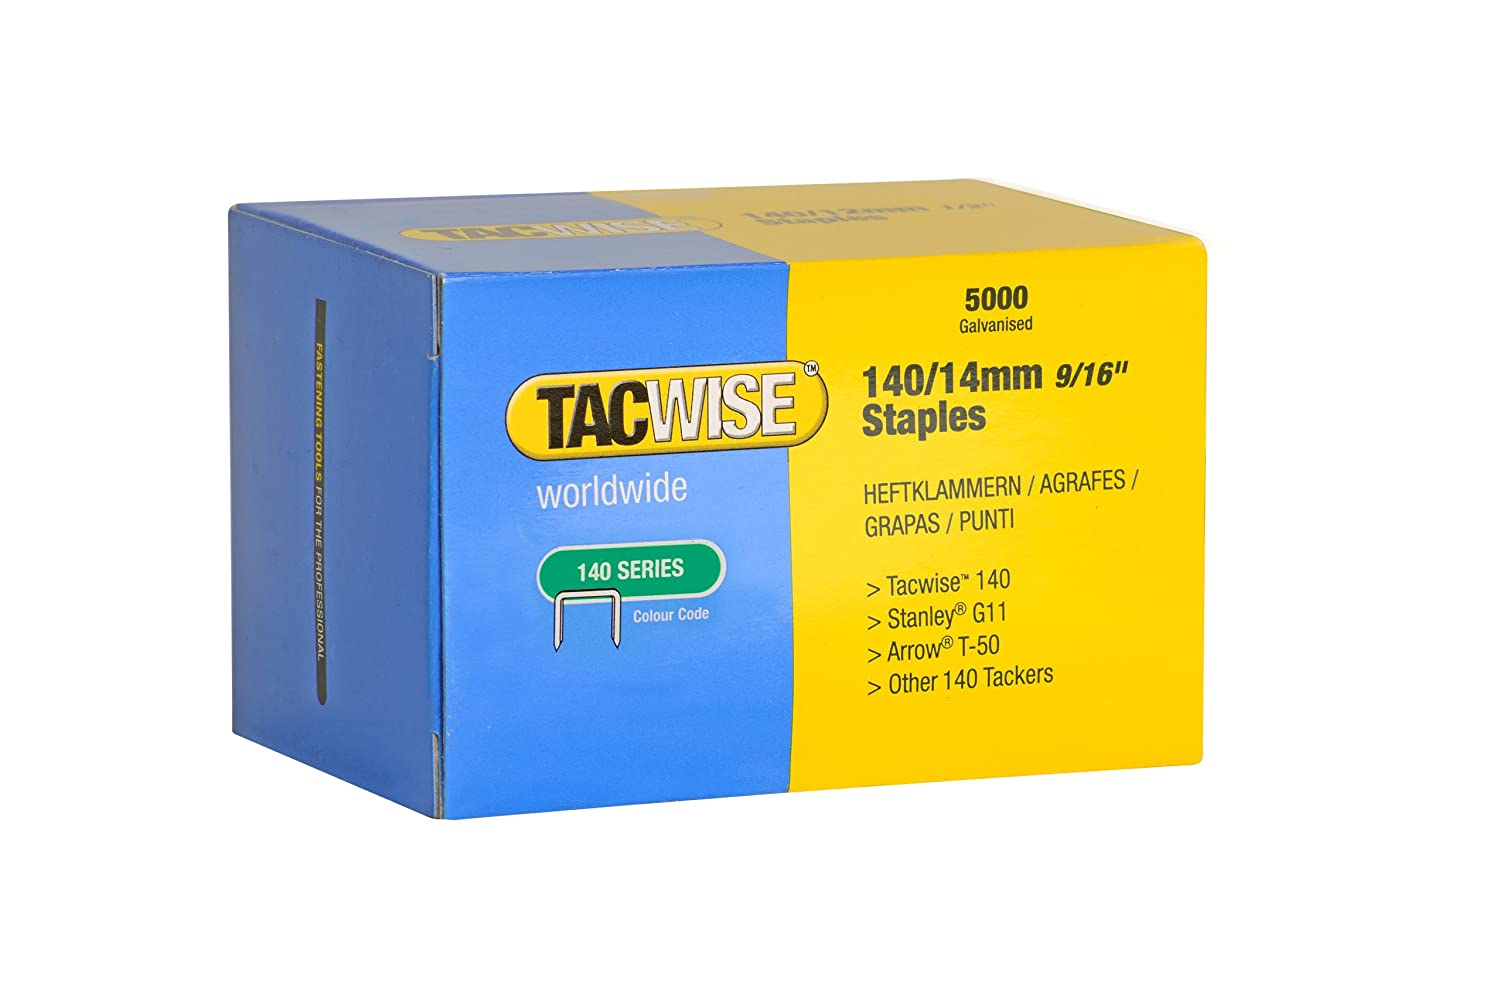 Tacwise 1217 140 Series Stainless Steel Staples, 3/8-Inch, 2000-Pack (1217)